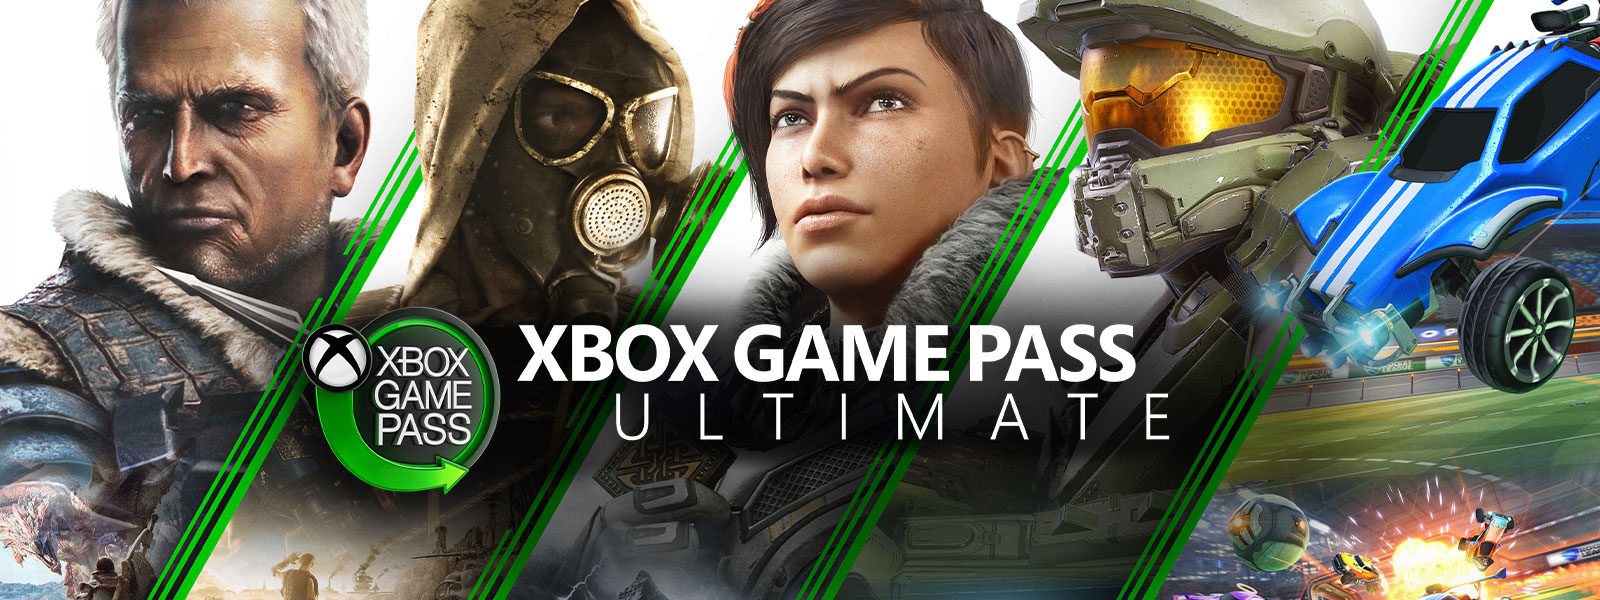 Xbox Game Pass Ultimate, un collage di personaggi e veicoli Xbox dietro il logo di Xbox Game Pass